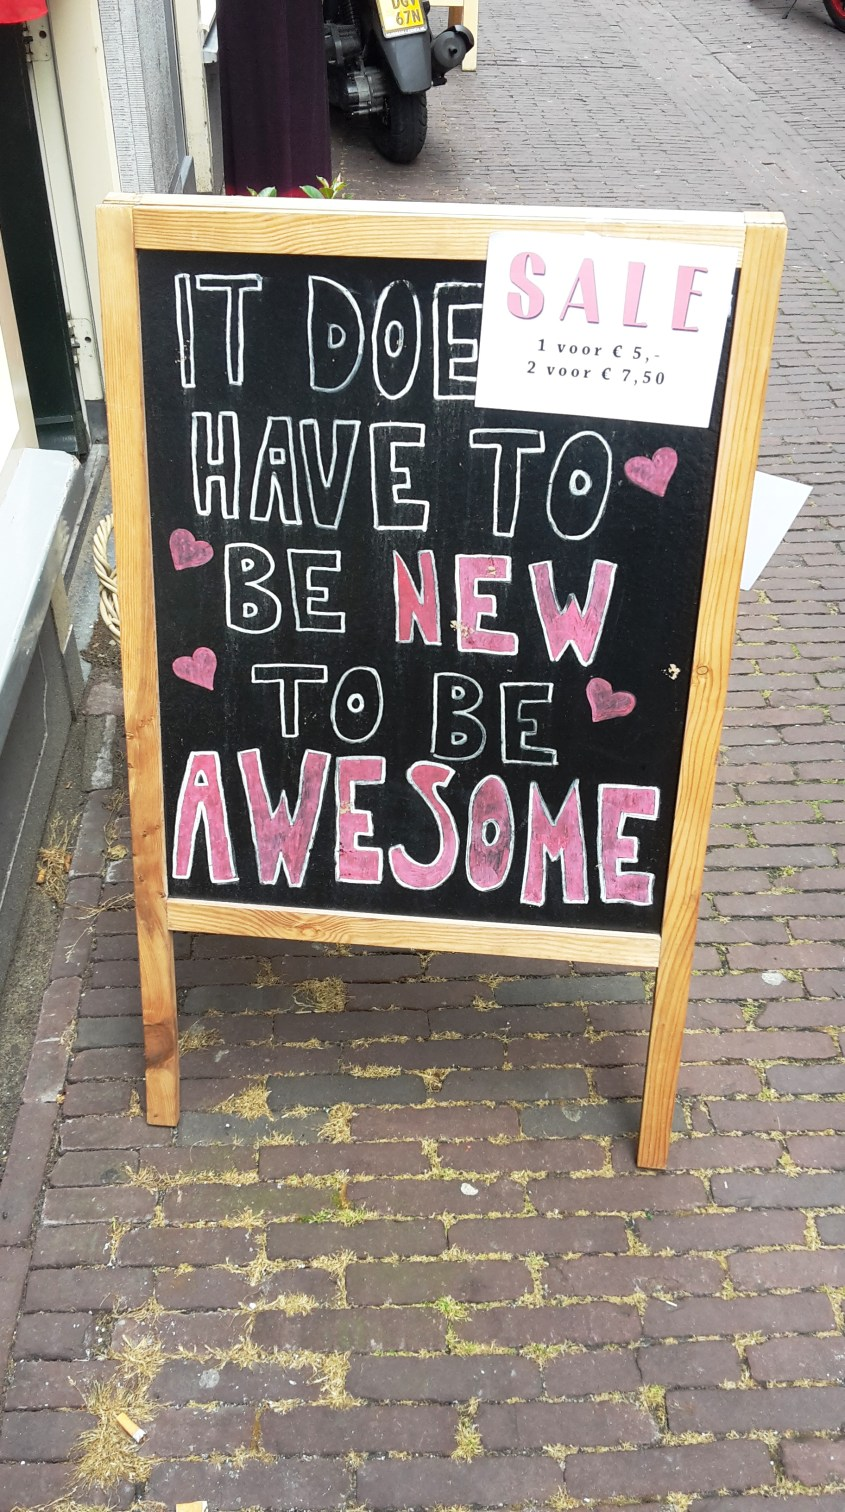 Tweedehans_It doesn;t have to be new to be awesome_Flamingo Leiden